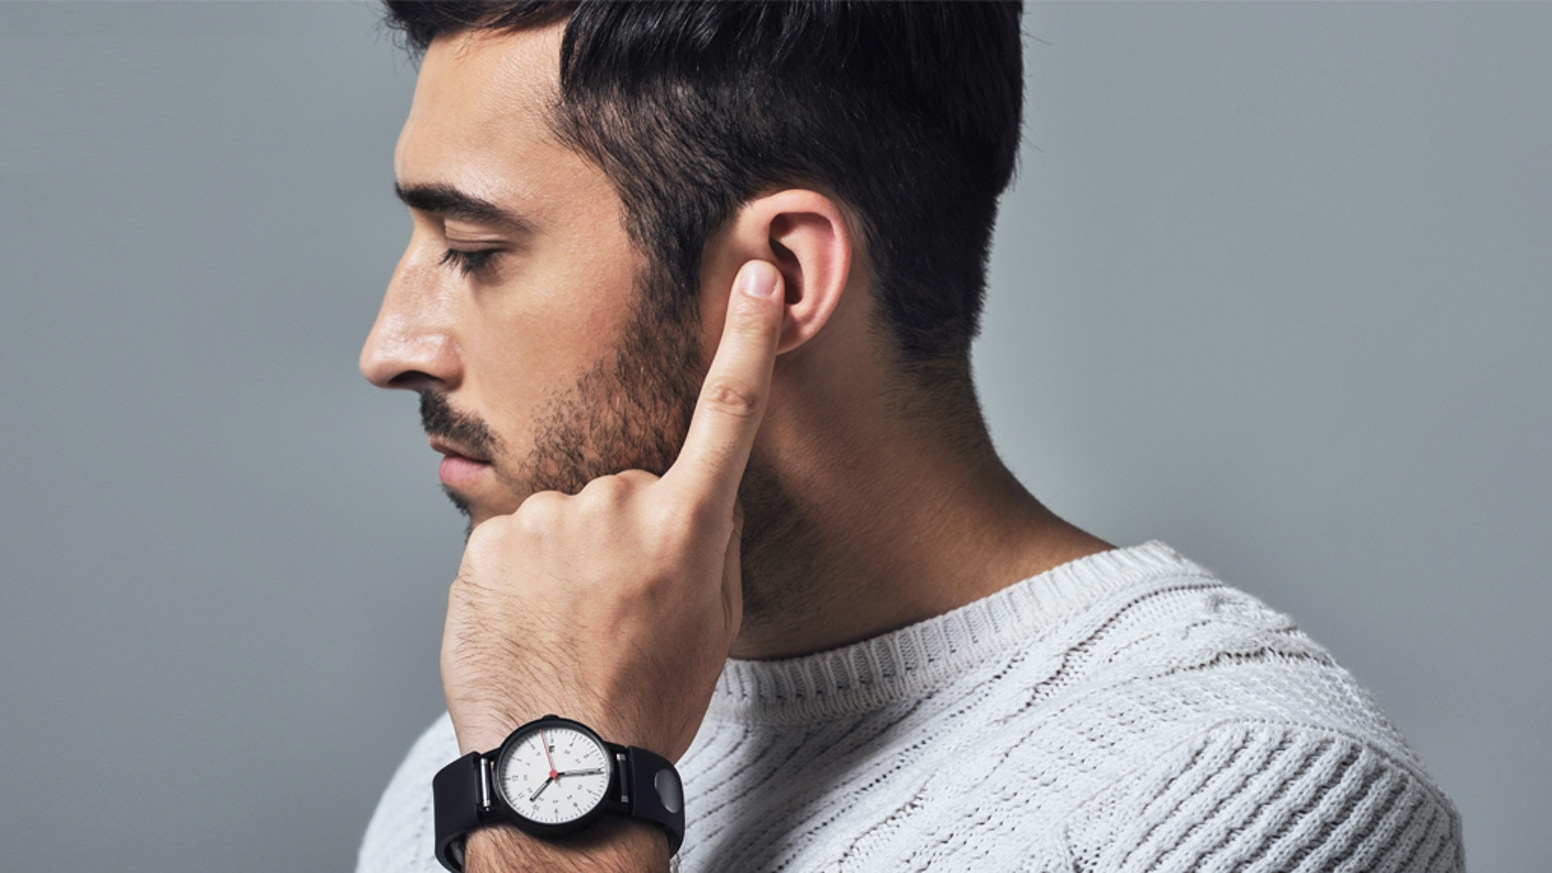 Sgnl is the smart strap that enables you to make calls by placing your fingertip on your ear. Connect with your watch to upgrade it.